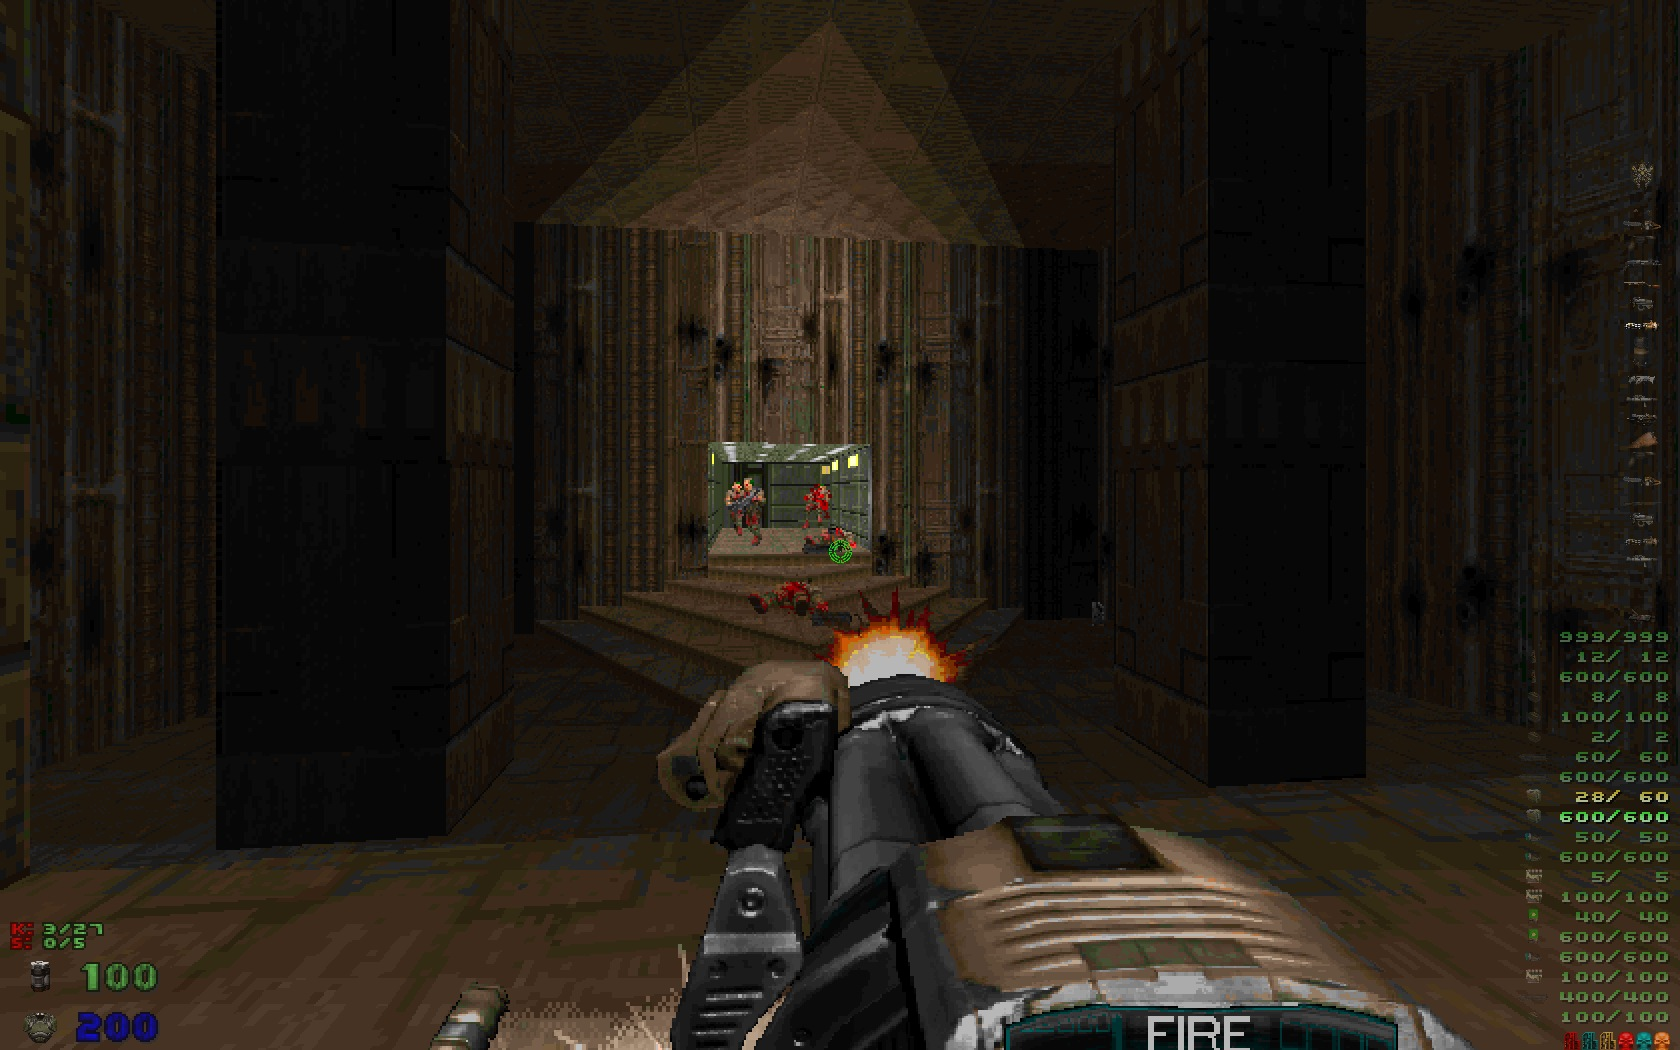 Chaingun Image Doom 3 Weapon Mod For Doom Ii Mod Db